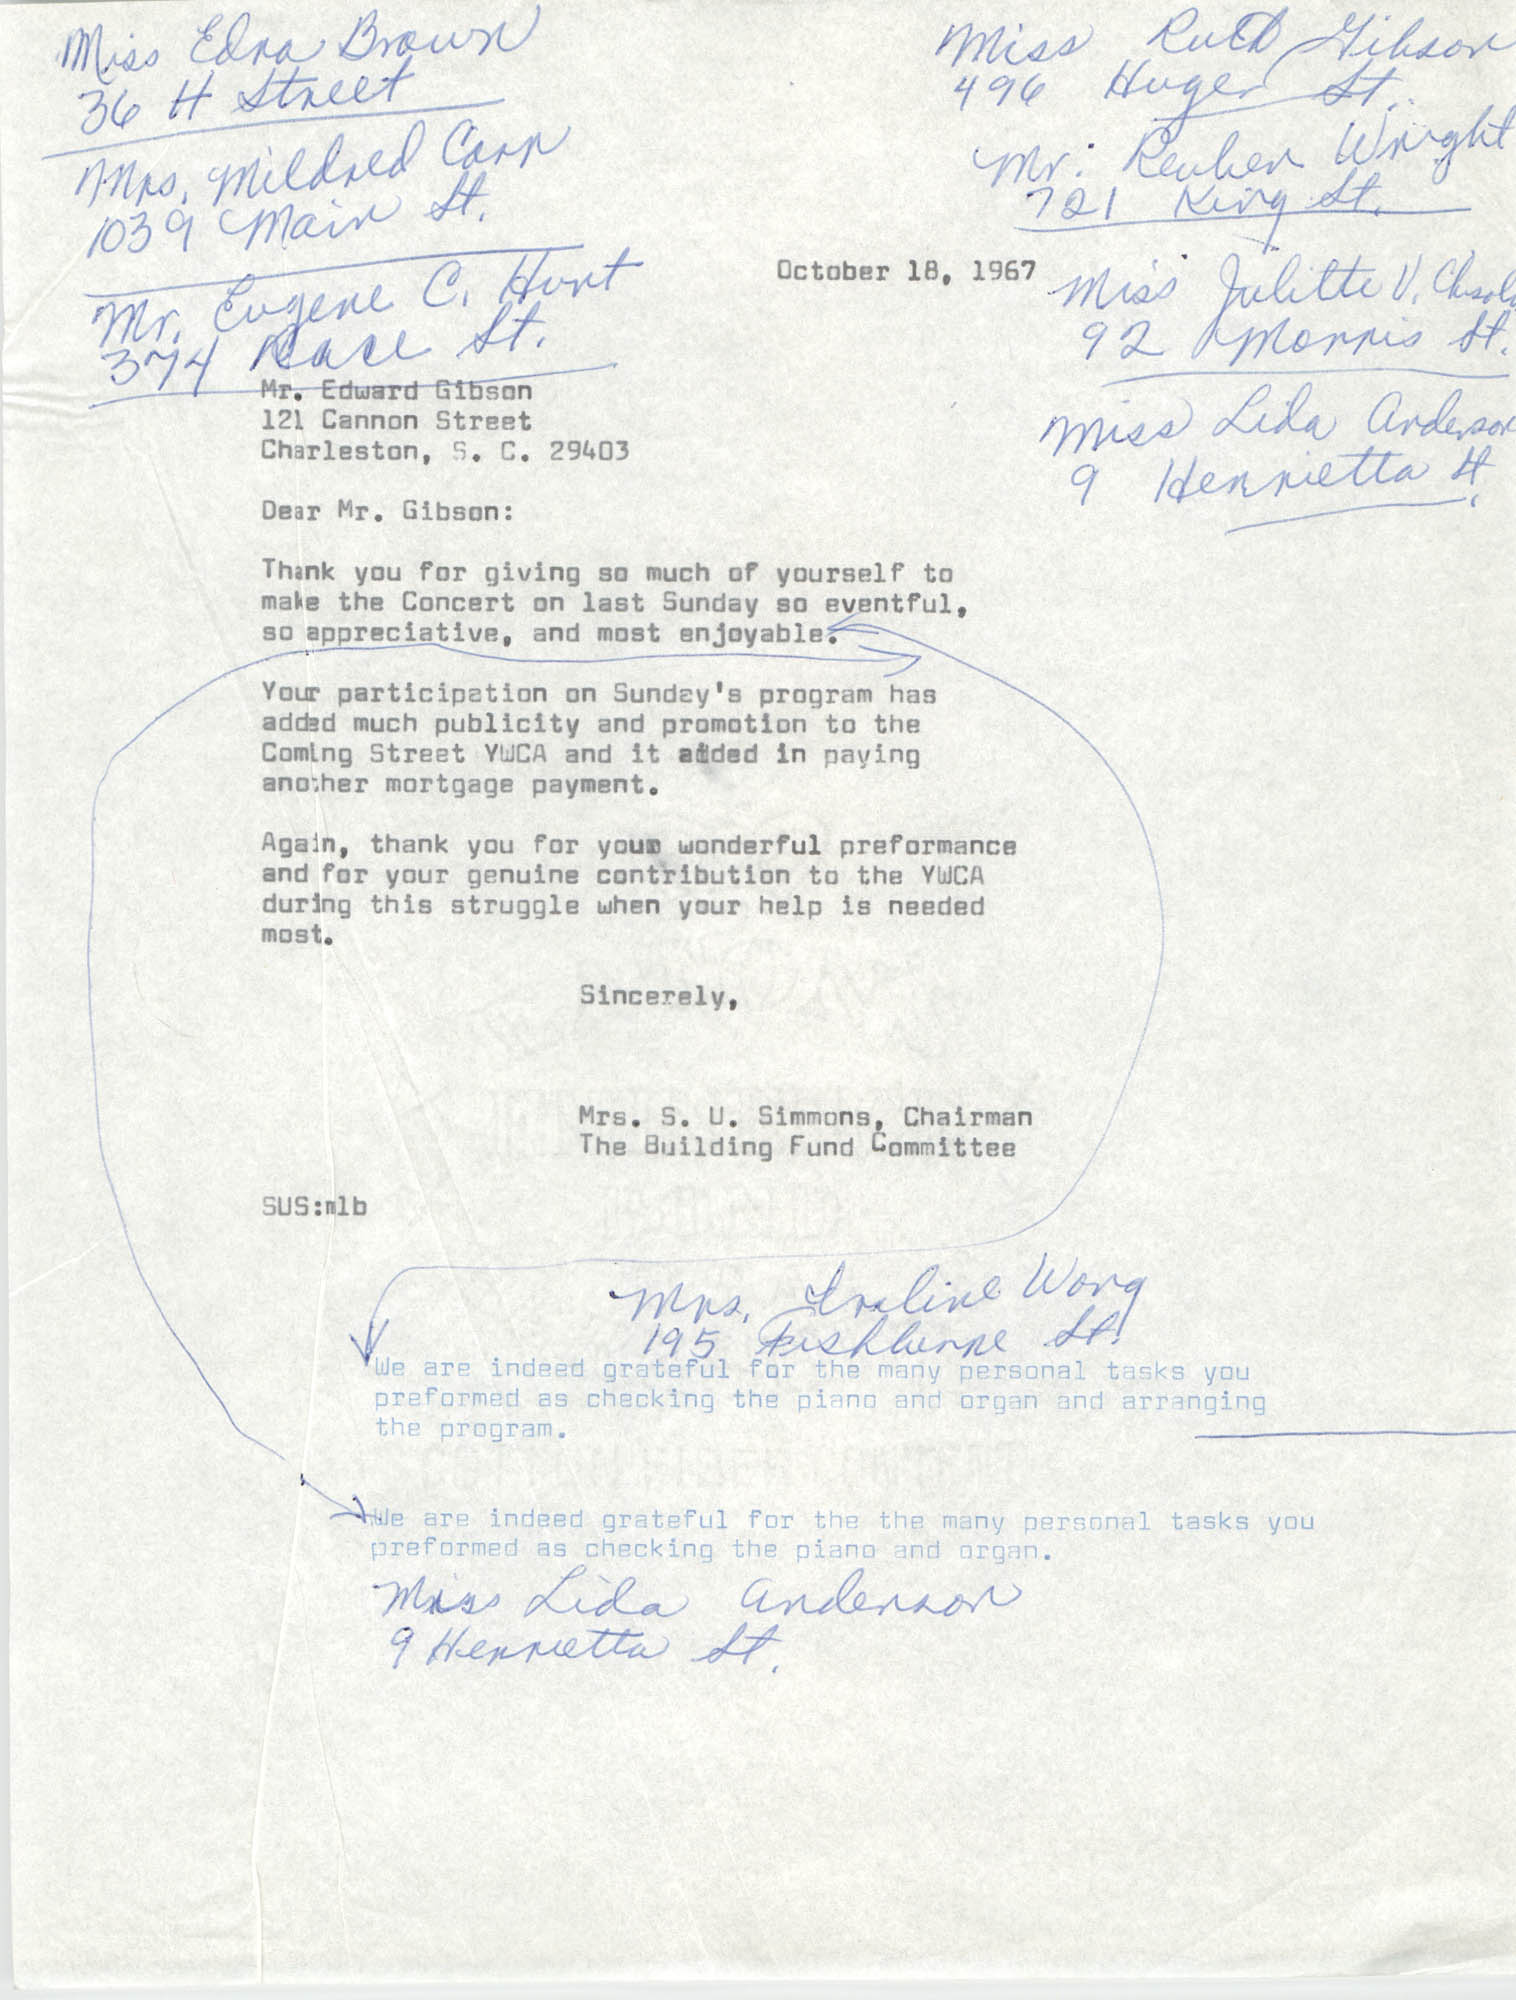 Letter from Mrs. S. U. Simmons to Edward Gibson, October 18, 1967